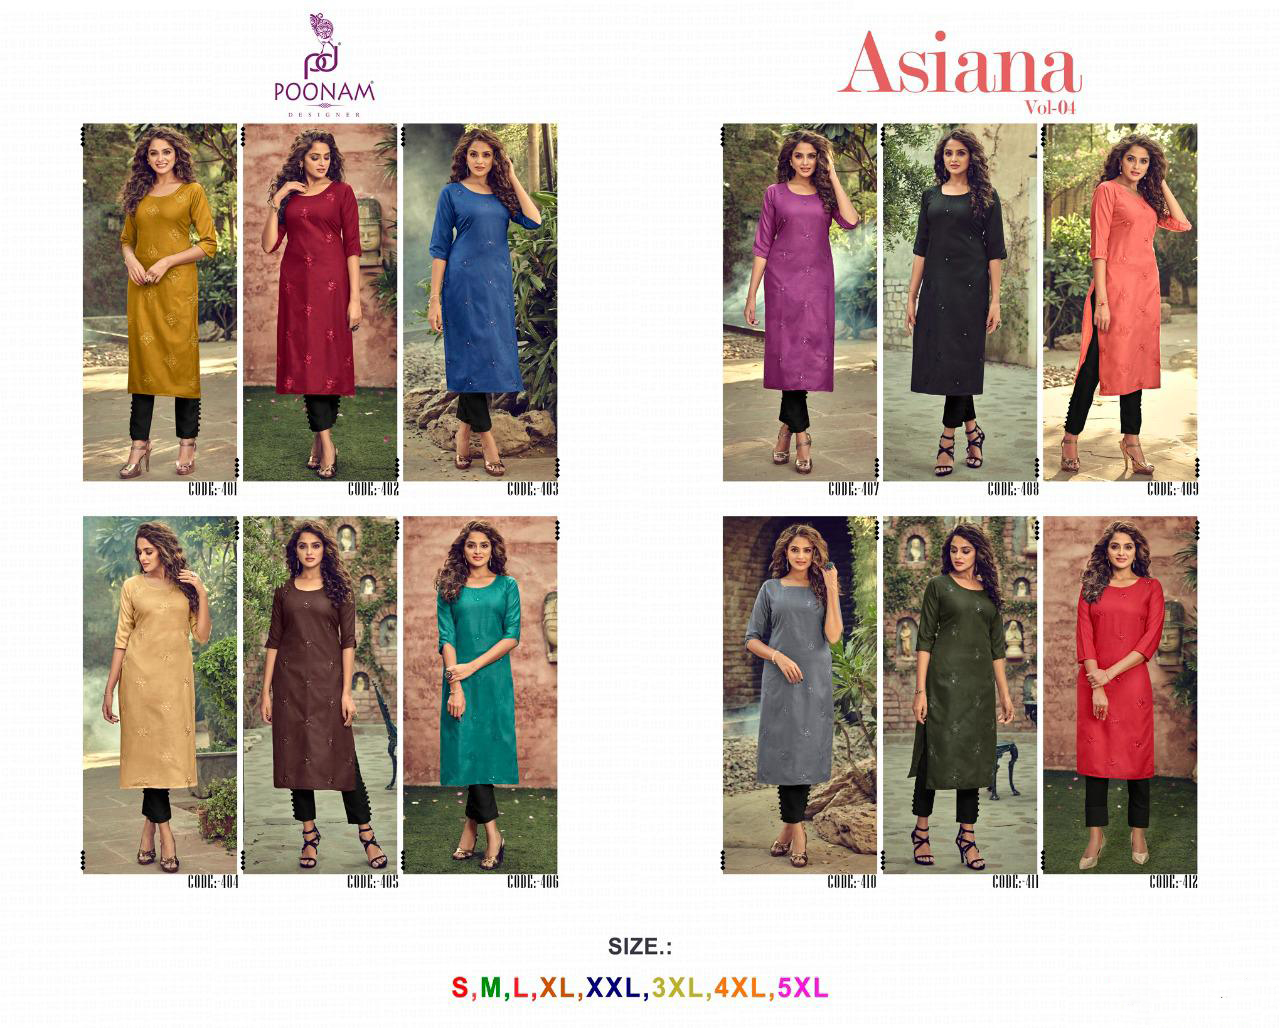 Poonam Designer Asiana Vol 4 Kurti Wholesale Catalog 12 Pcs 13 1 - Poonam Designer Asiana Vol 4 Kurti Wholesale Catalog 12 Pcs